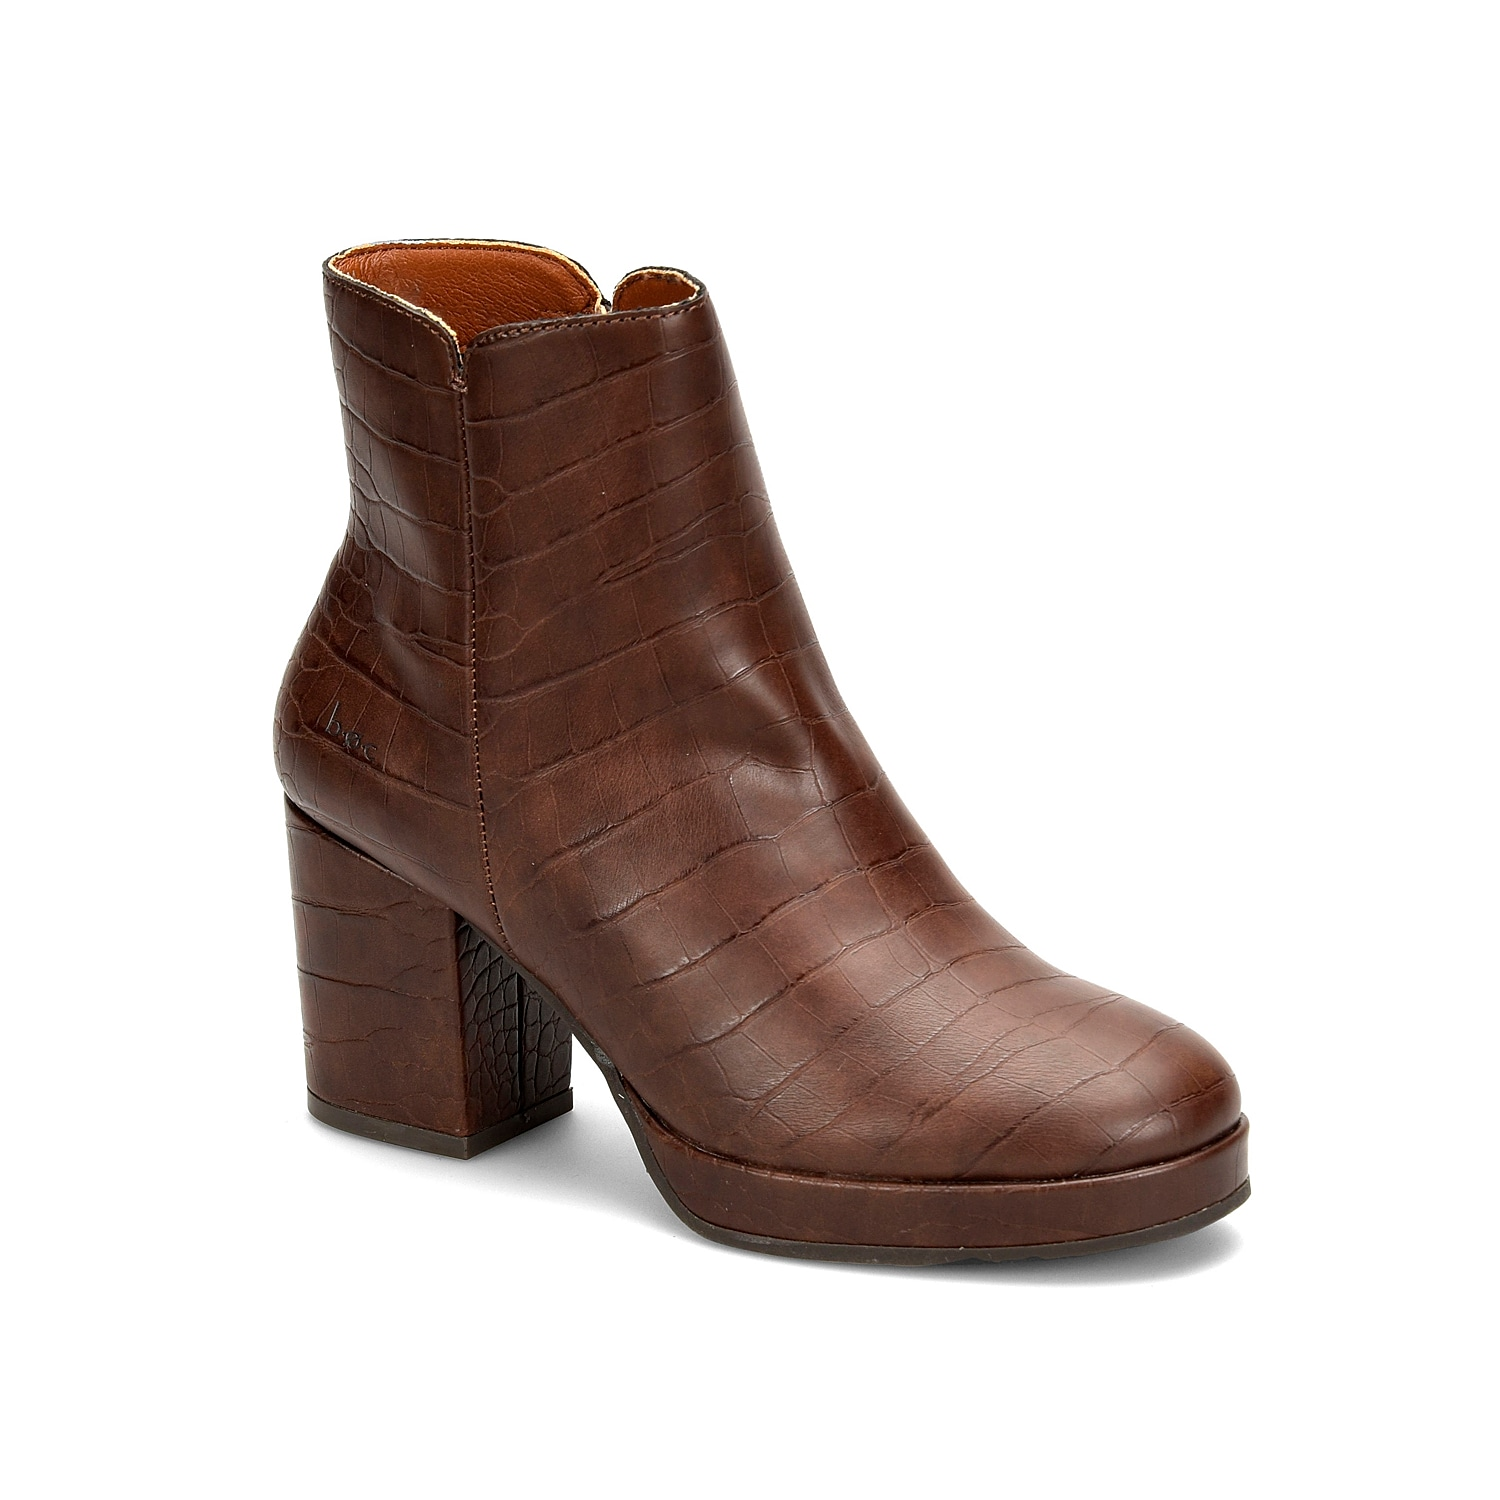 You\\\'ll fall in love with the sleek look and the vintage inspiration of the b.o.c.Lacey bootie. The clean profile comprises of easy-to-wear side zip closure and chunky platform and heel for elegant lift.